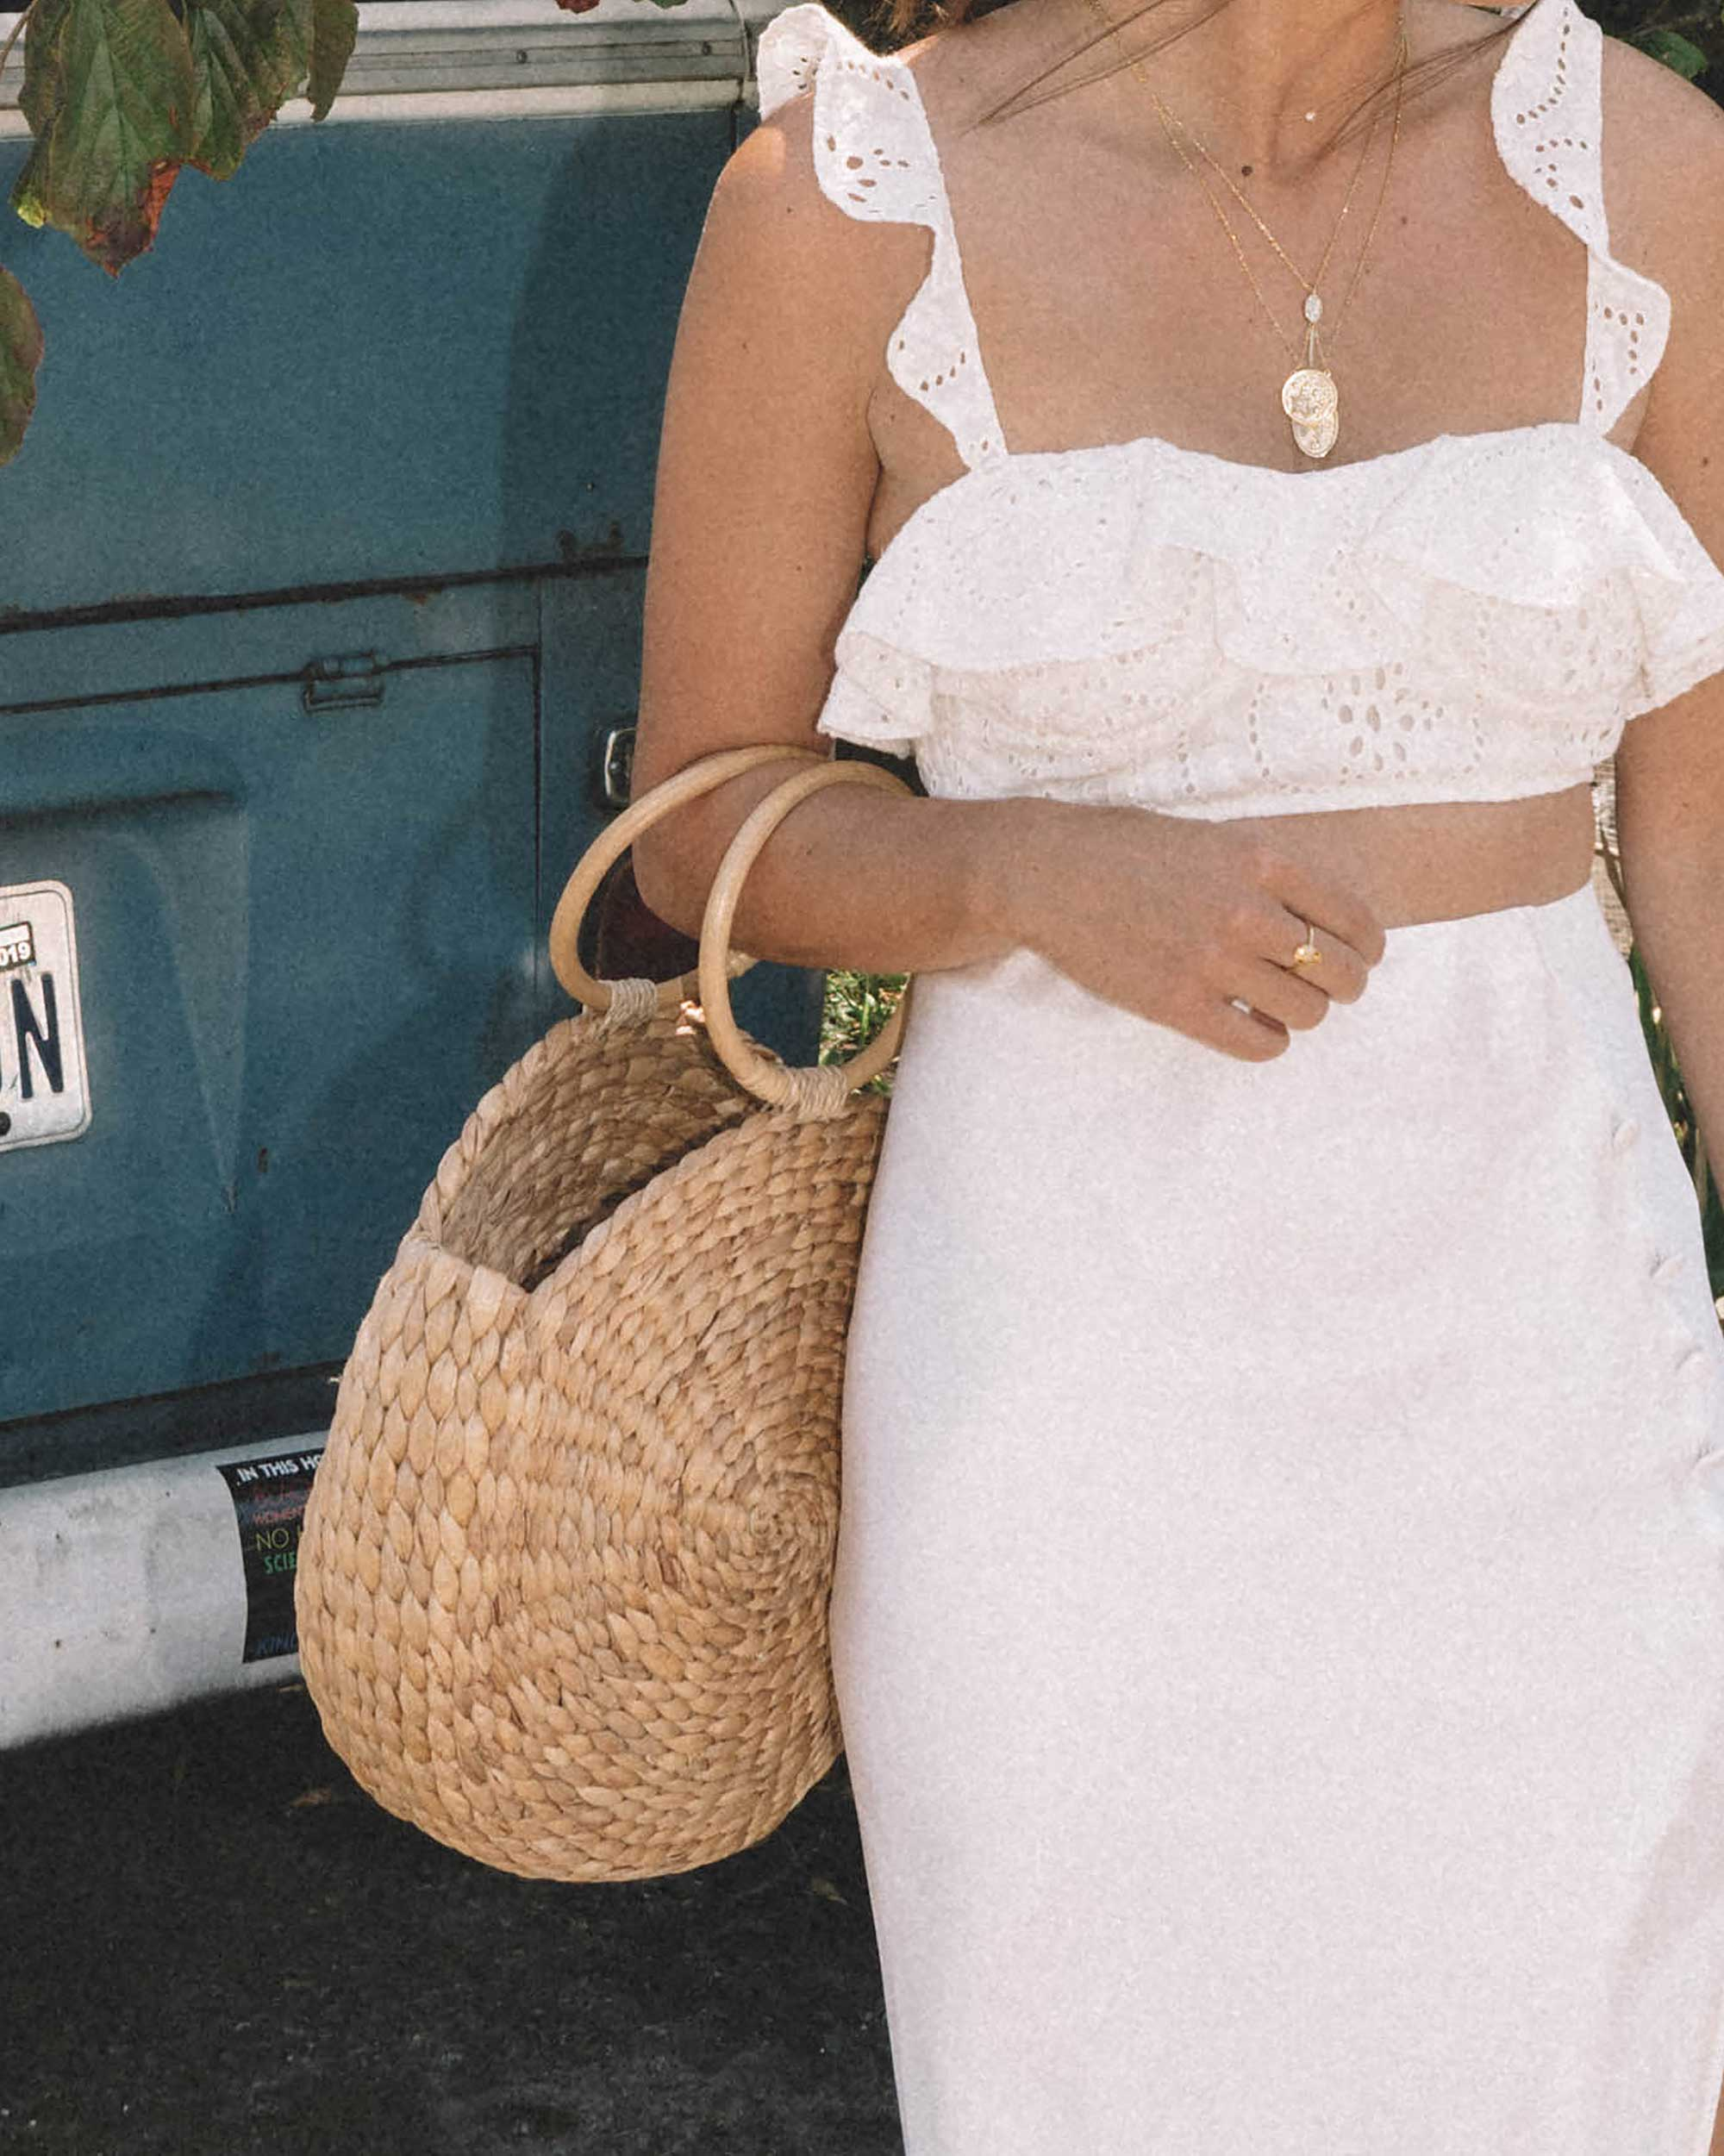 Sarah Butler of Sarah Styles wearing white summer outfit featuring Satin Bias Cut Skirt and Lovers + Friends Charlotte White Eyelet Bralette in Seattle | @sarahchristine --1.jpg